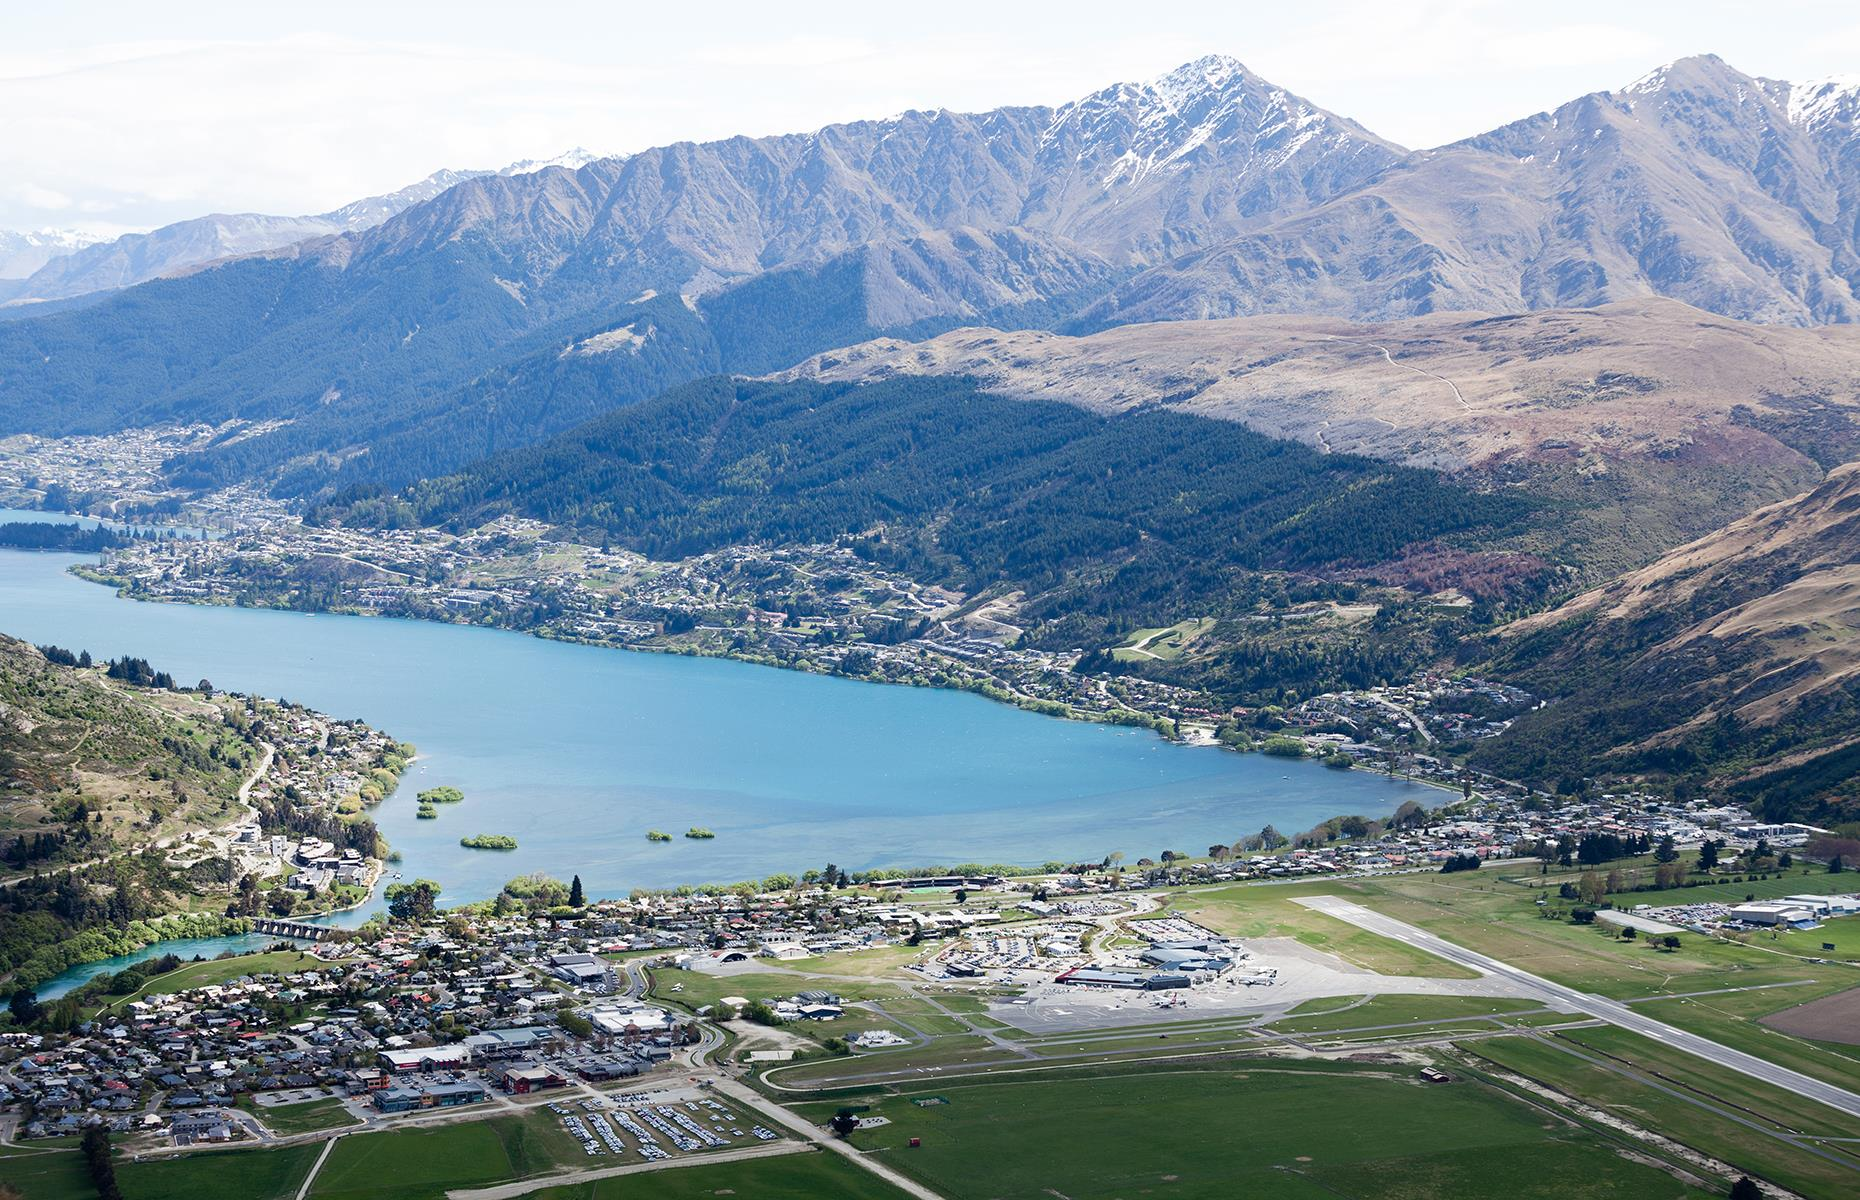 Slide 26 of 31: En route to Queenstown, planes have to negotiate the craggy mountain region and the frequent high winds plussideways rain. Thankfully specialprocedures have been introduced to ensure safe operations, which is lucky now that night-time flights have been introduced.